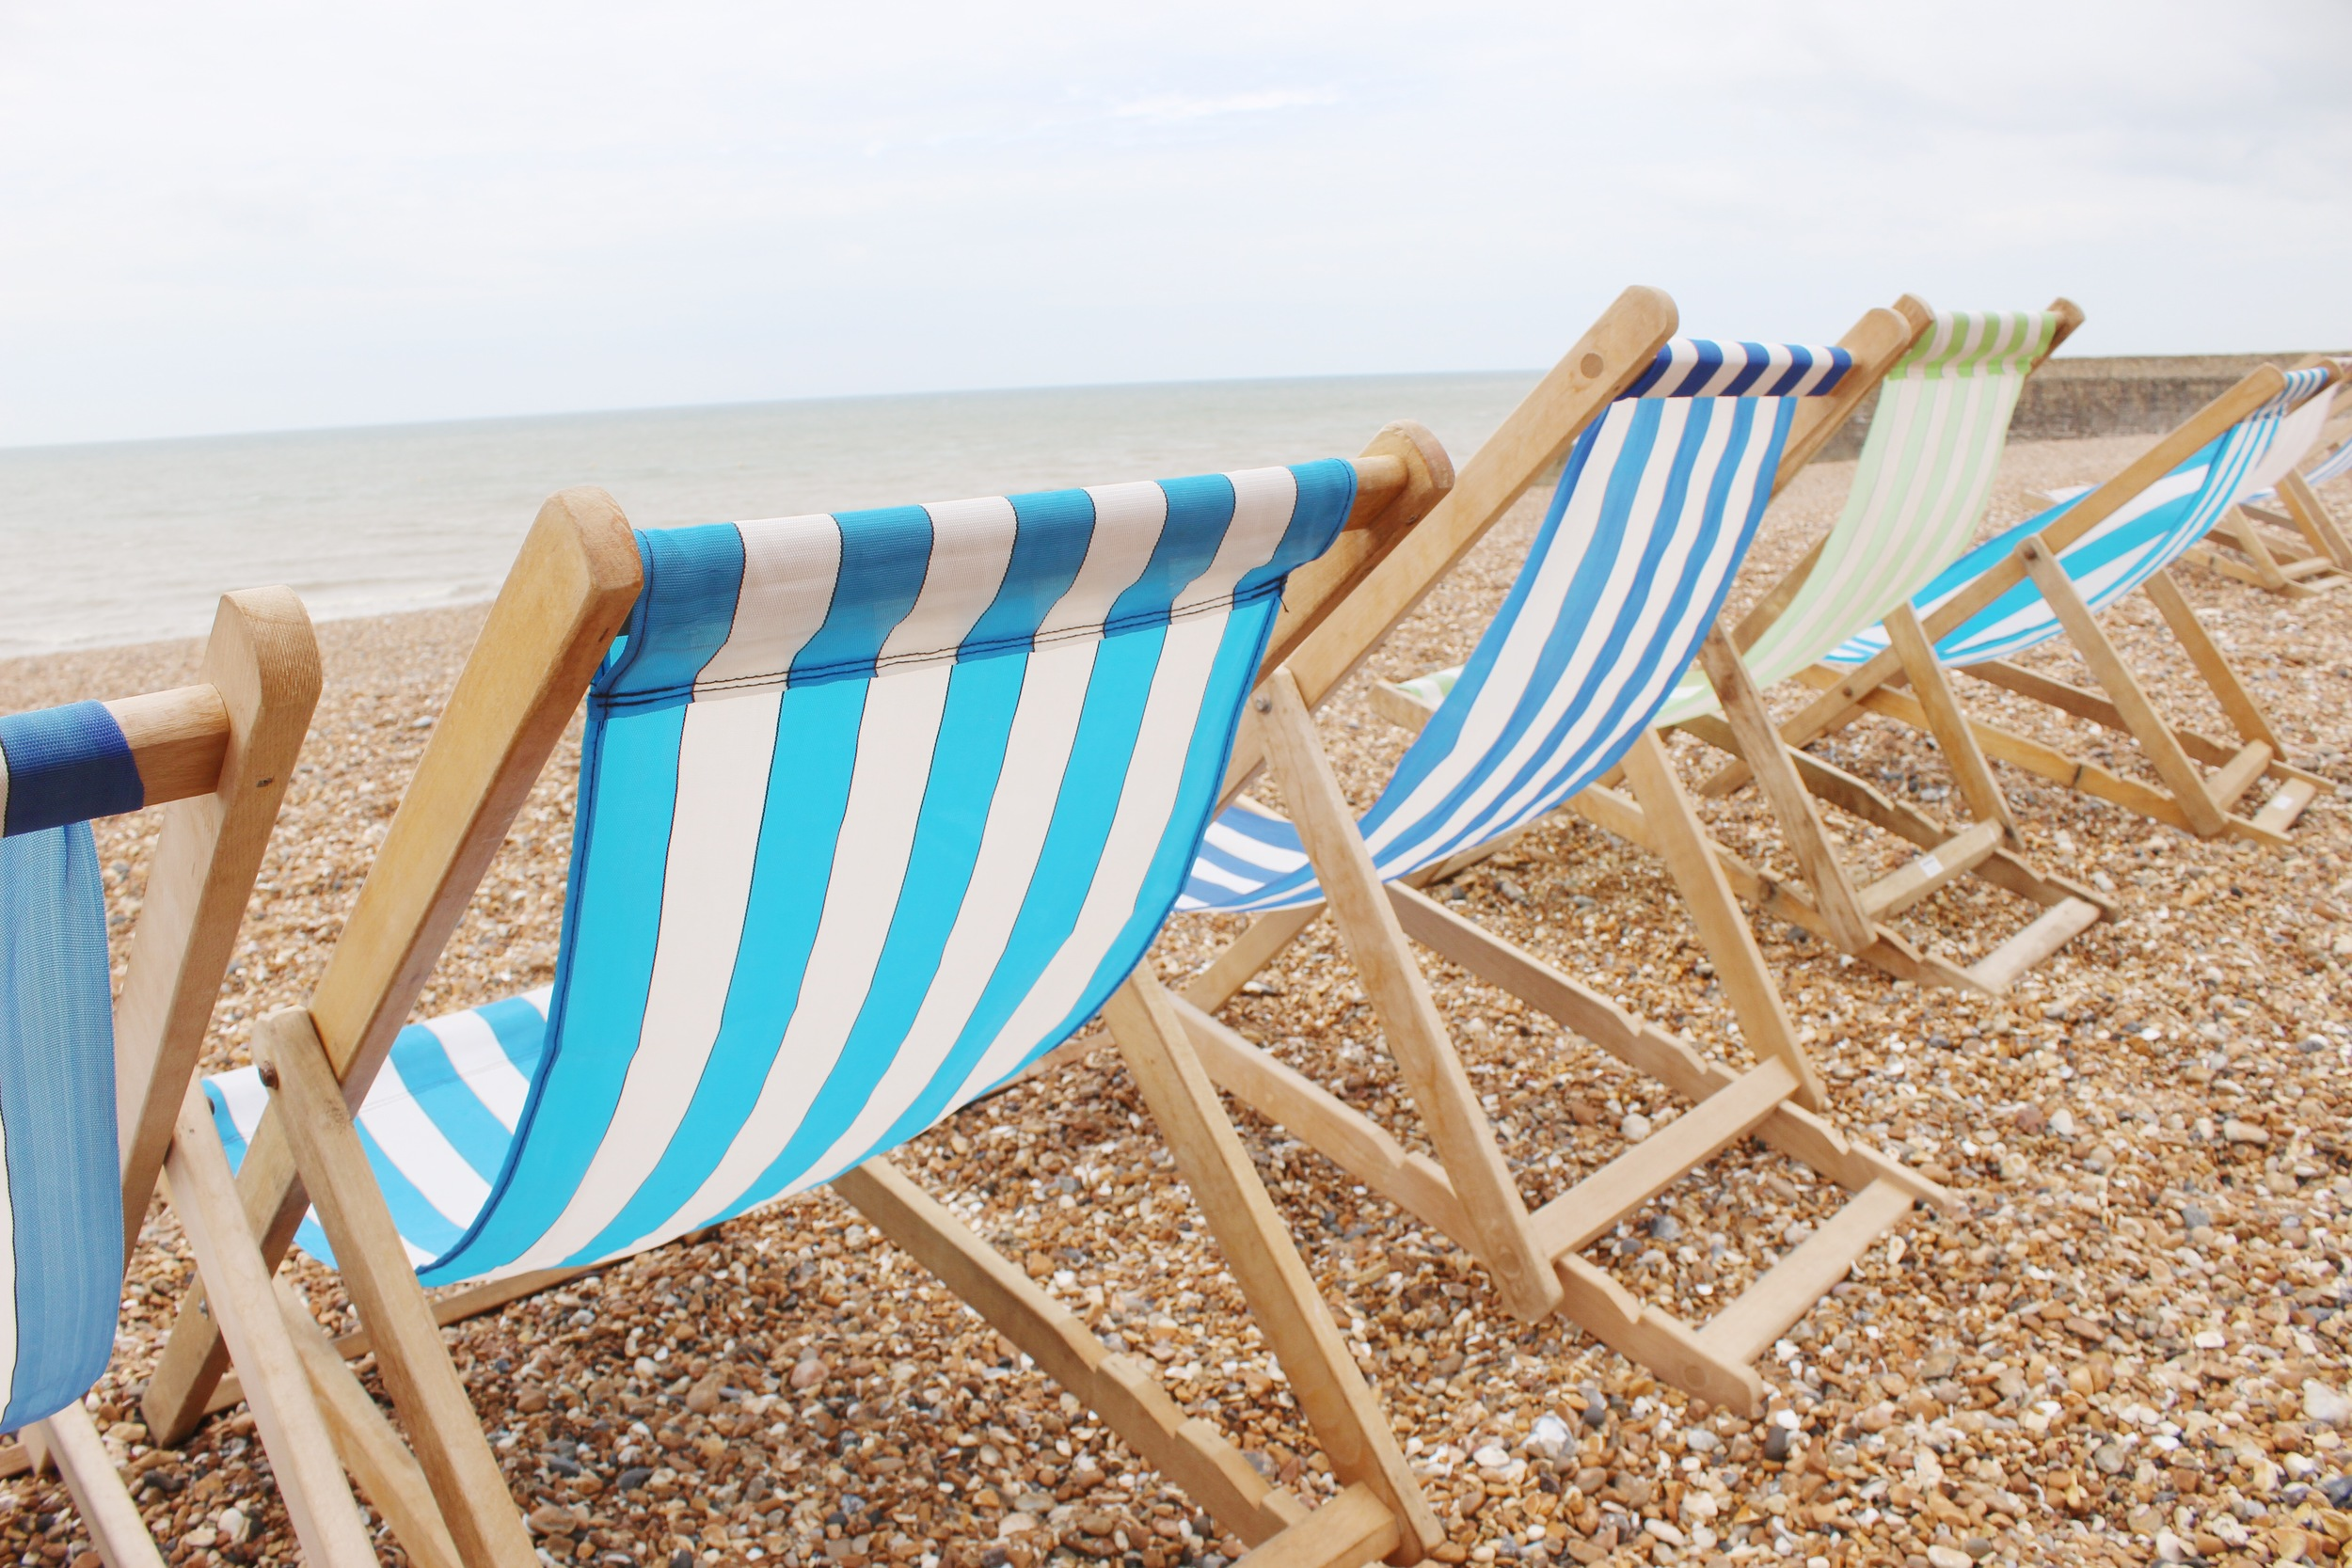 Striped beach chairs in Brighton, England